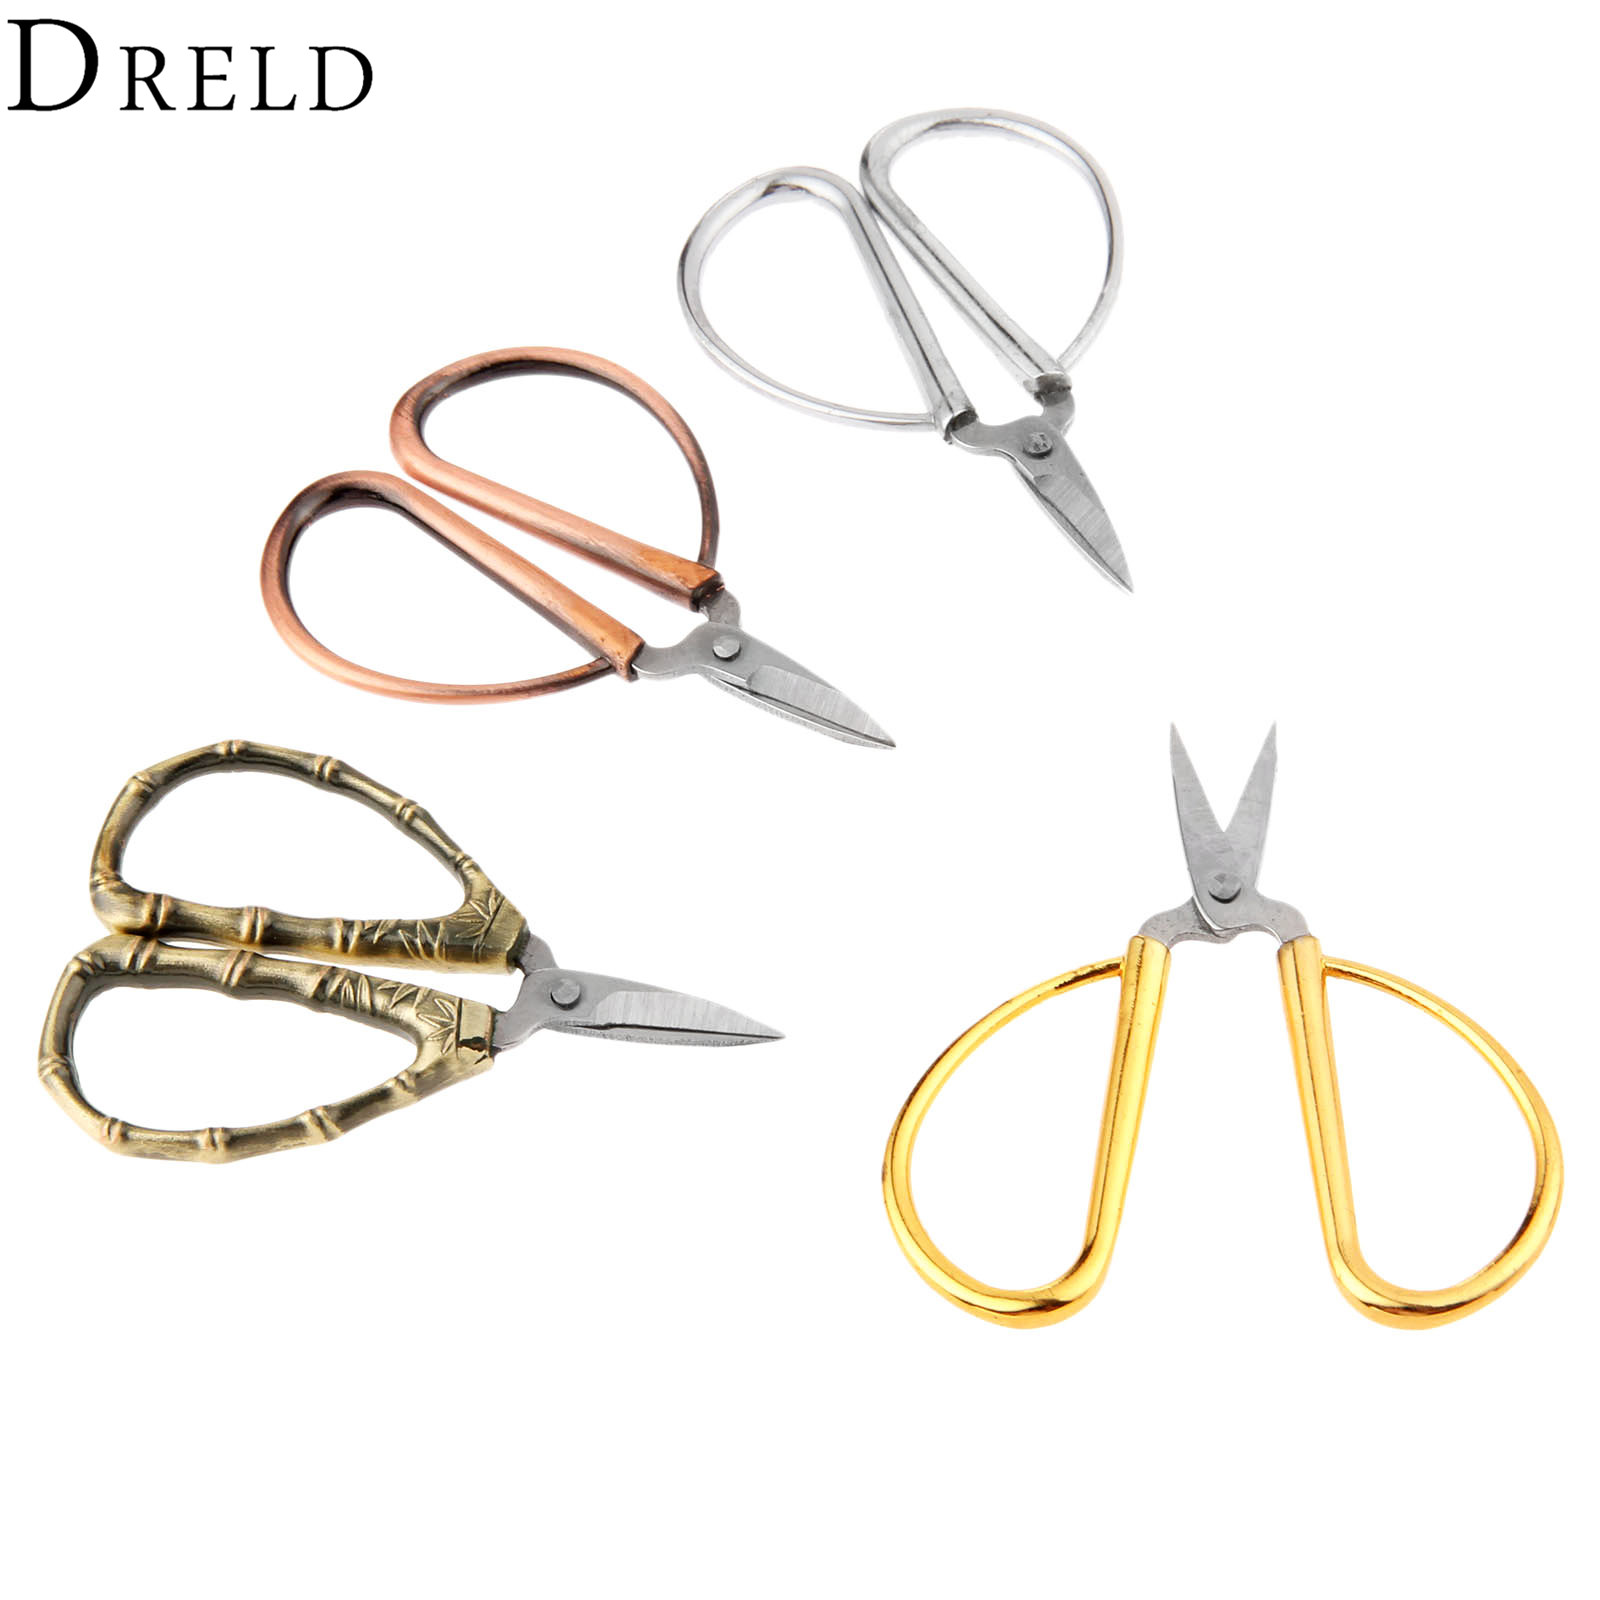 DRELD Vintage Mini Cross Stitch Sewing Scissors Stainless Steel Abrasion Resistance Tailor's Scissors Handicraft DIY Hand Tools